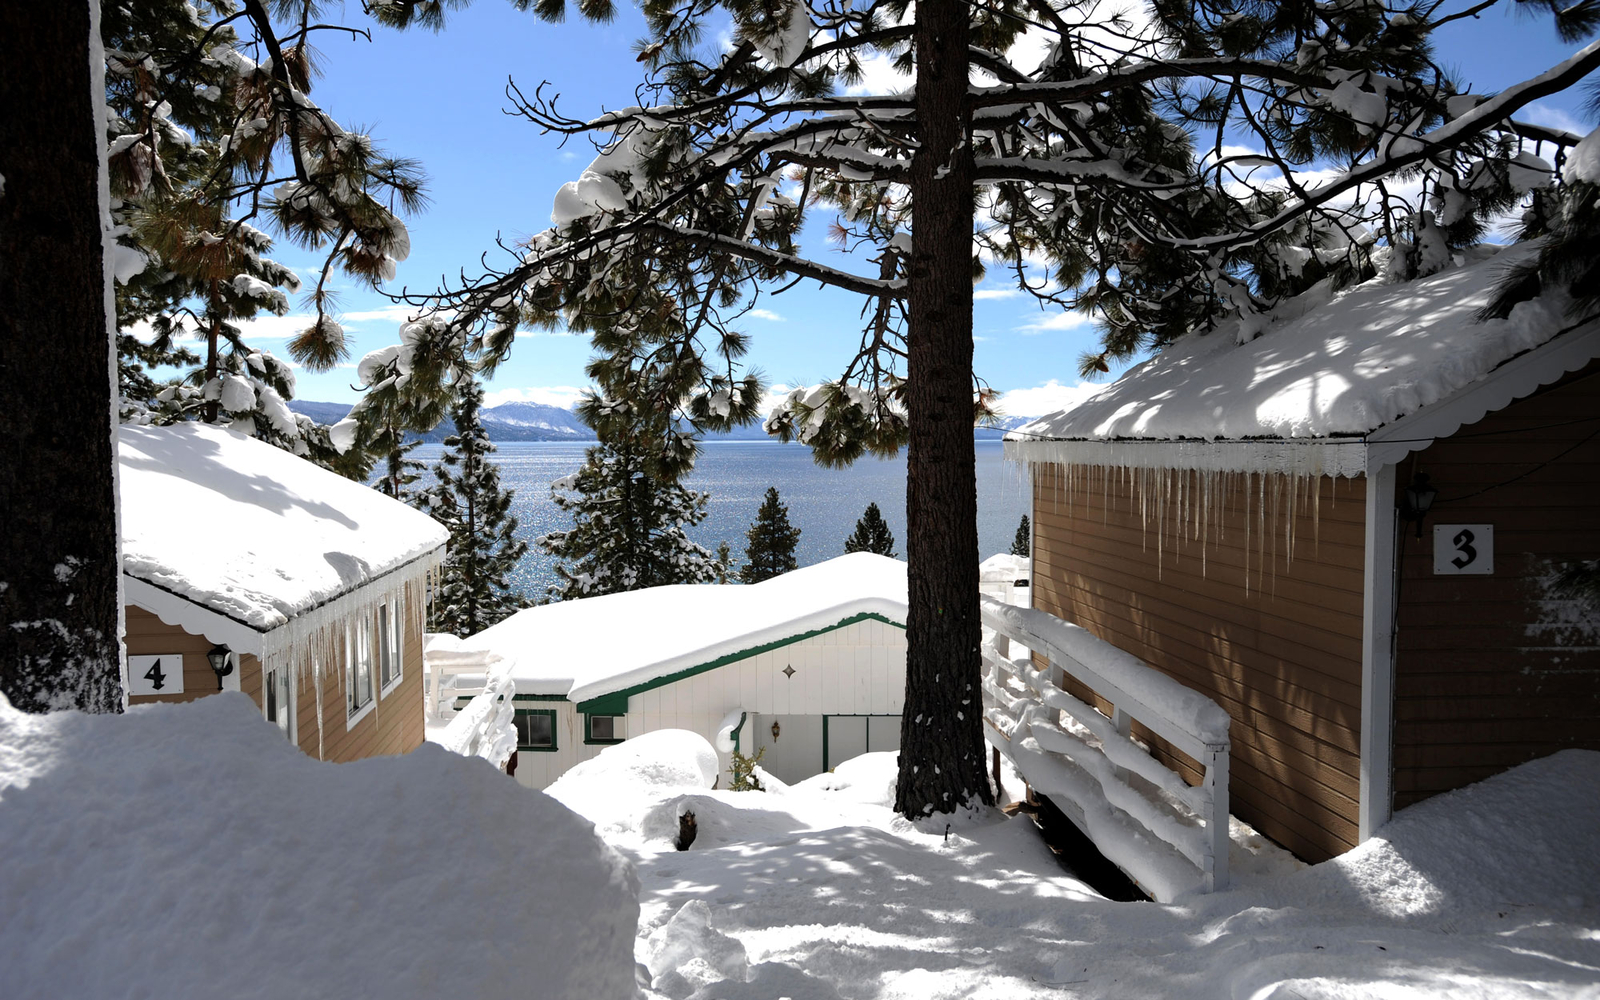 Cal Neva Resort Lake Tahoe